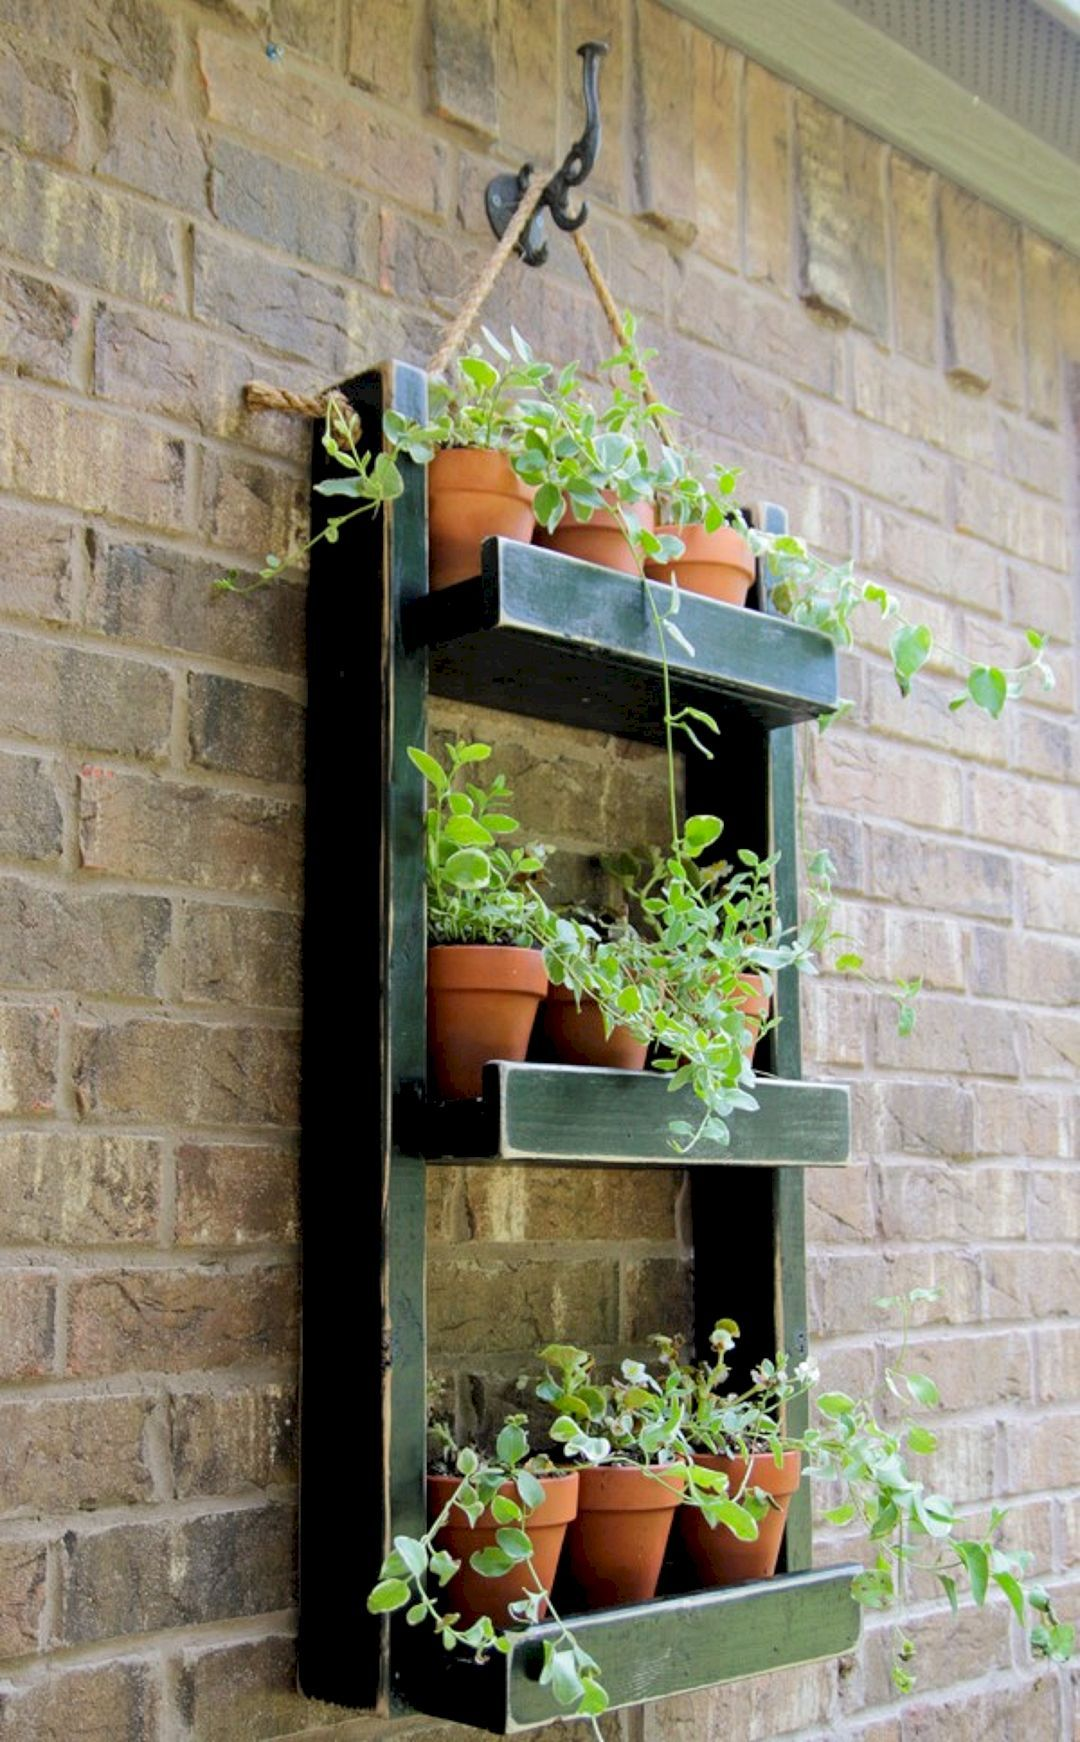 15 Best Indoor Herb Garden Ideas for Your Small Home and